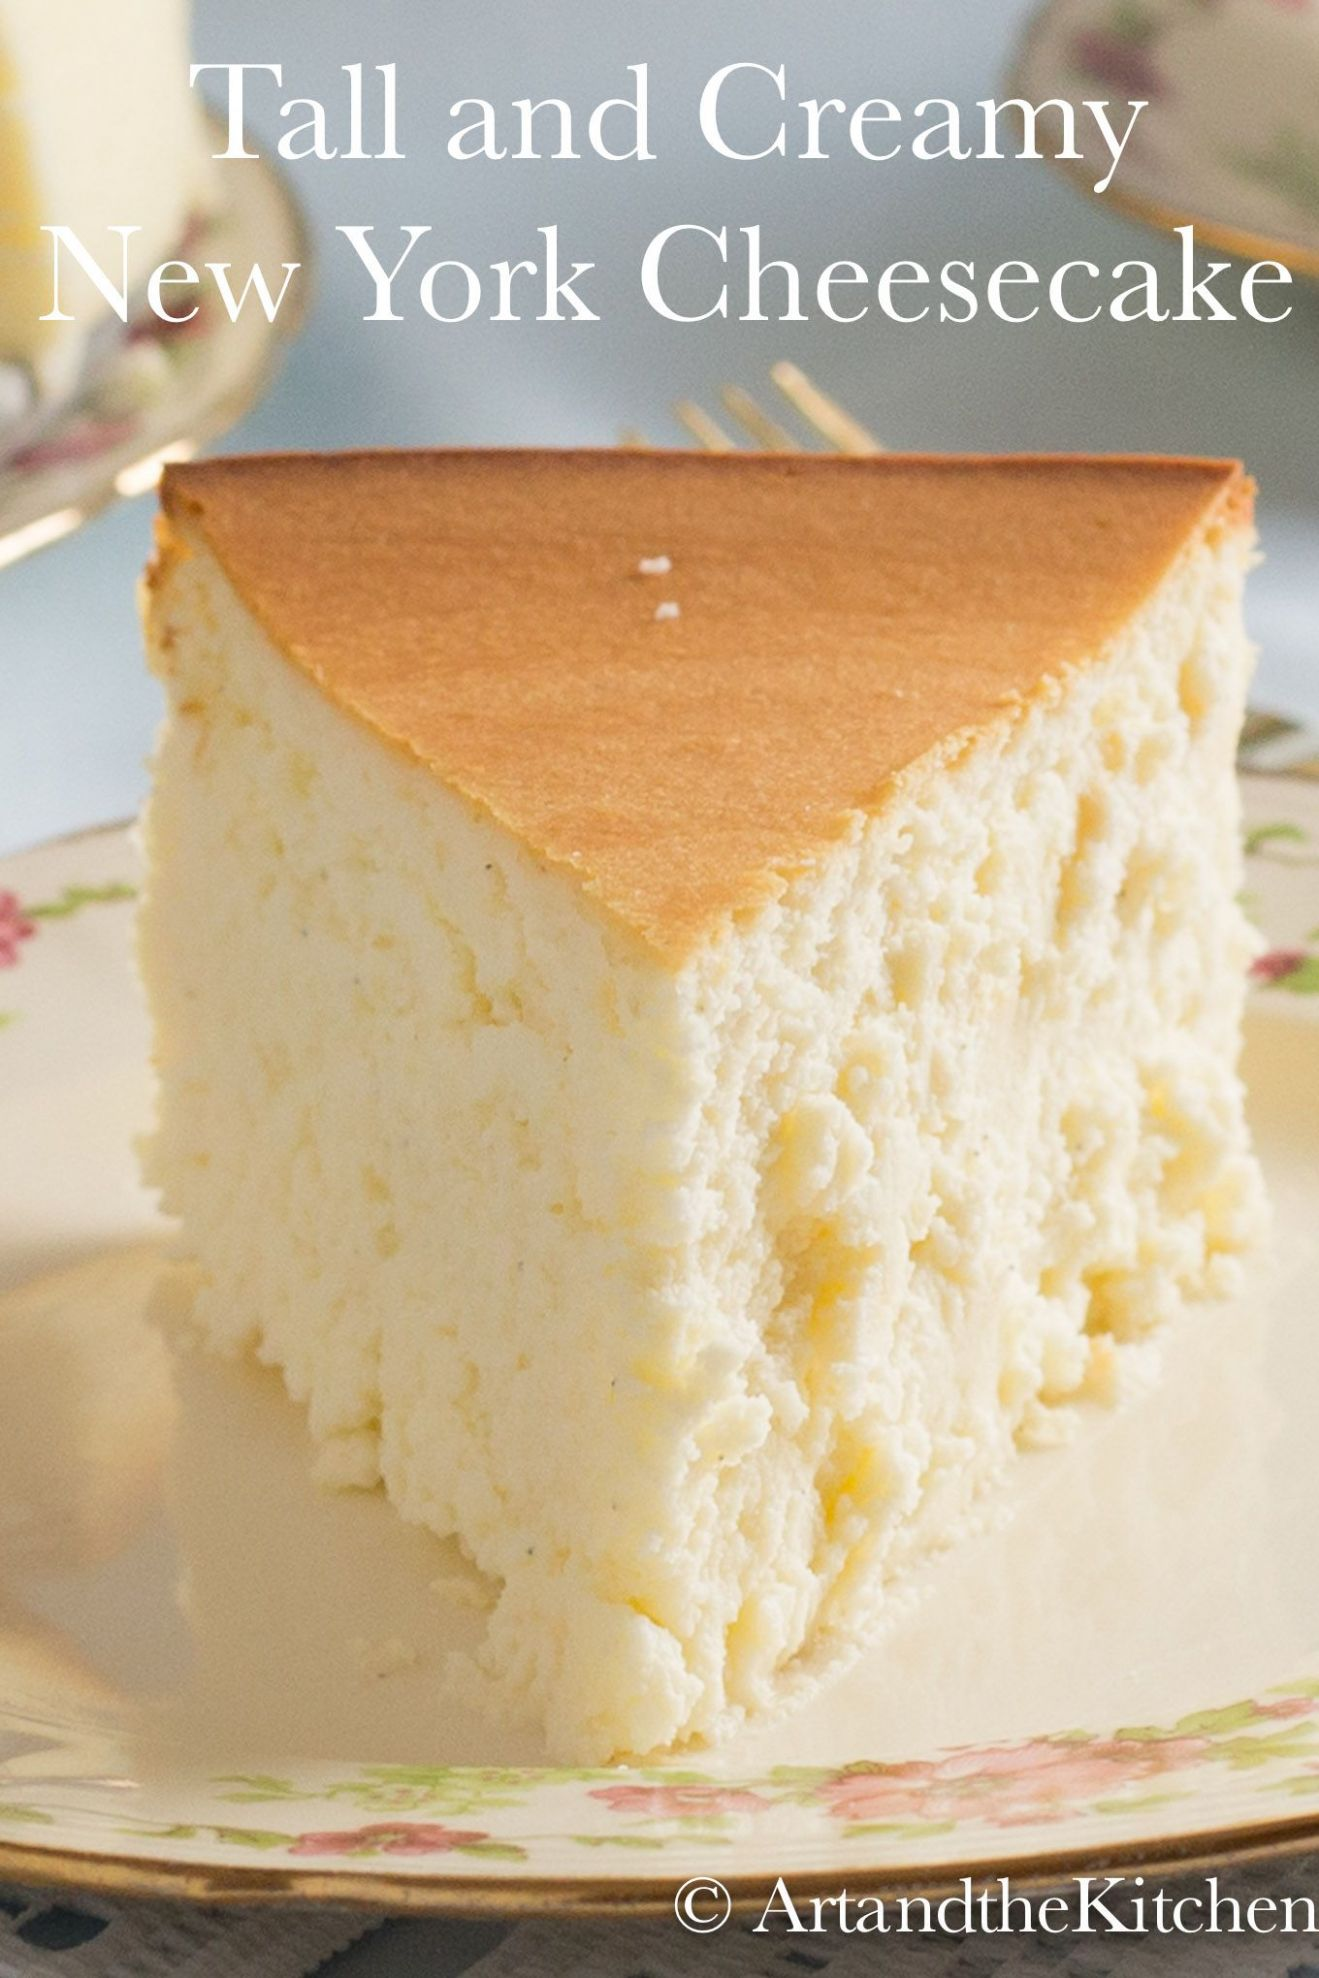 Tall and Creamy New York Cheesecake is an incredible cheesecake ..